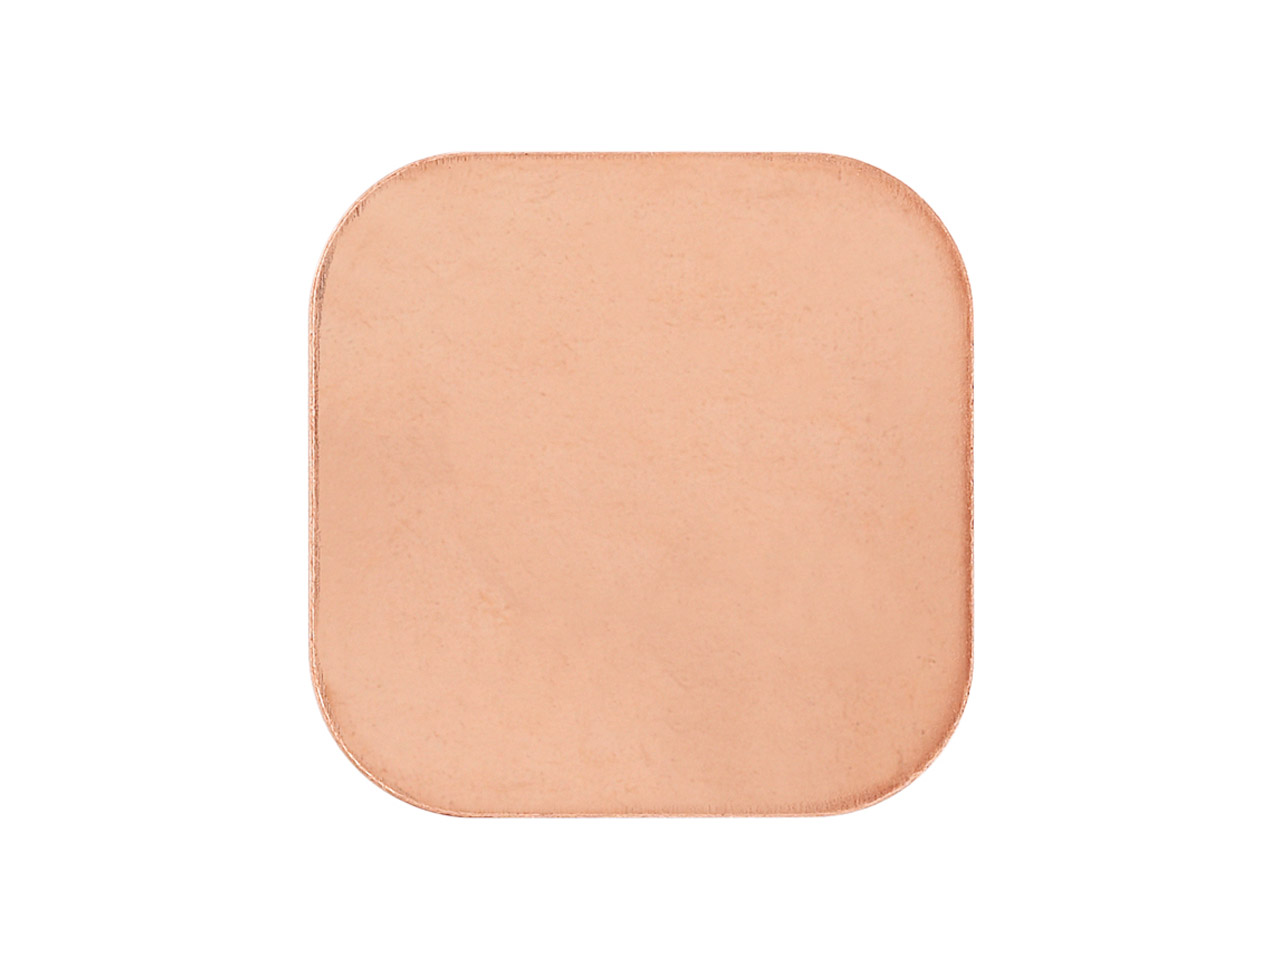 Copper Blanks Rounded Square       Pack of 20 18mm X 18mm